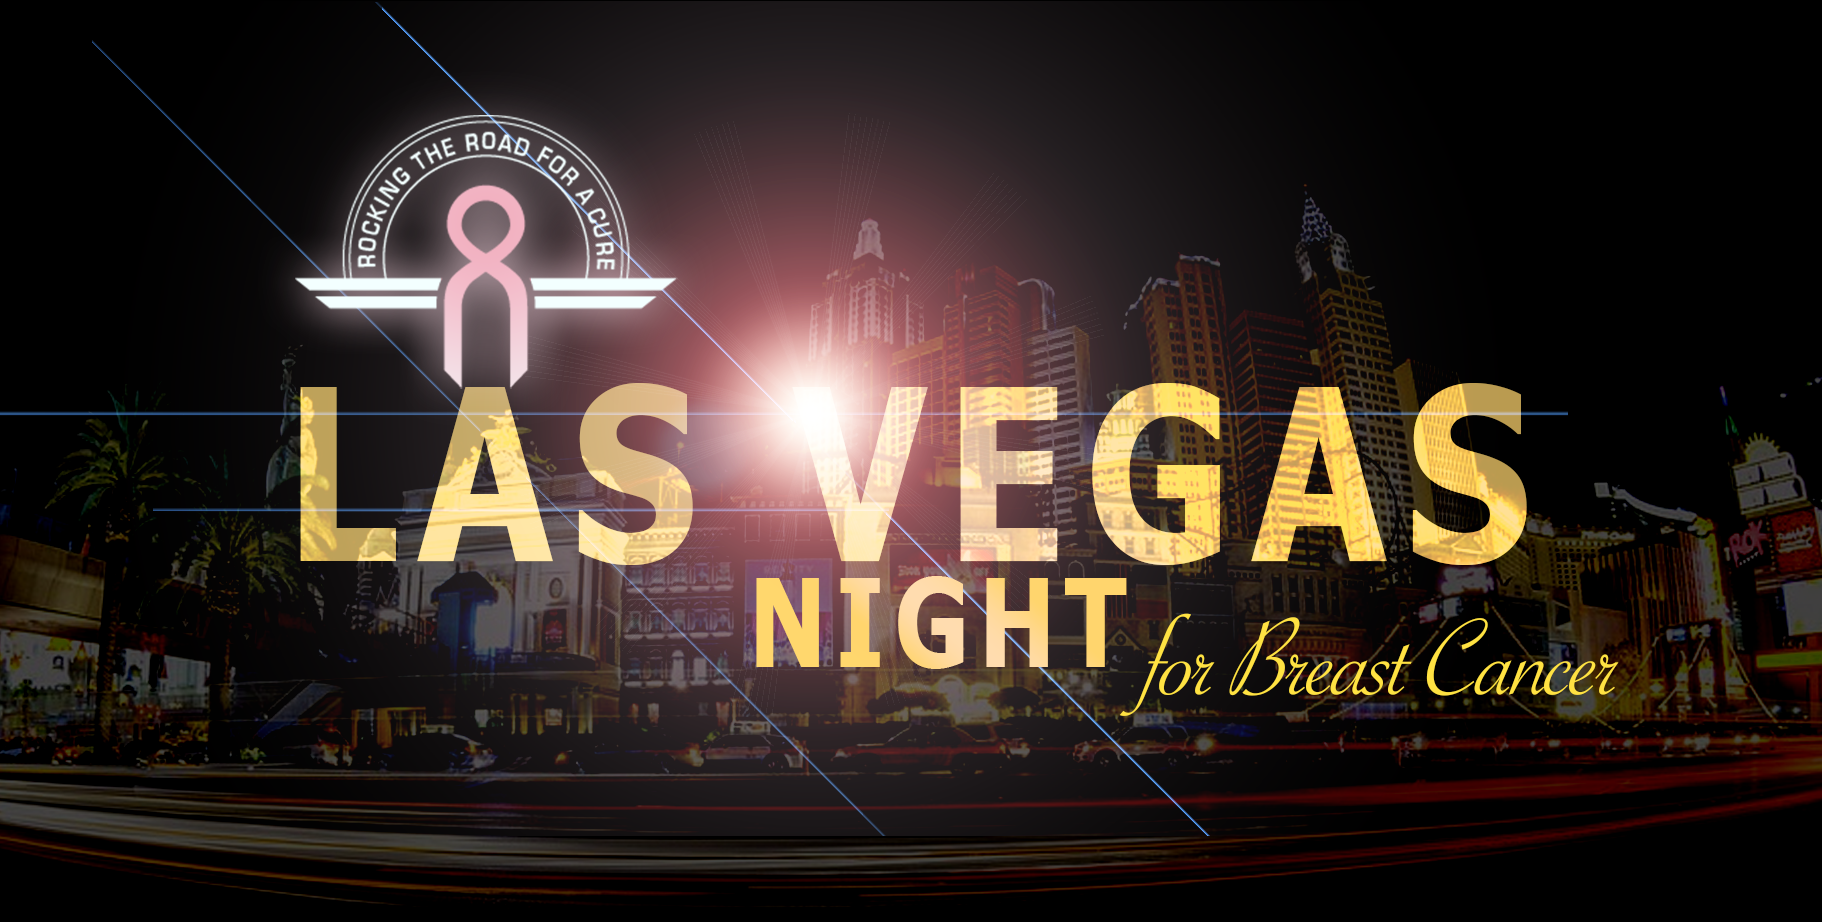 Las Vegas Night - American Legion Malverne Post 44 -Breast Cancer Fundraiser